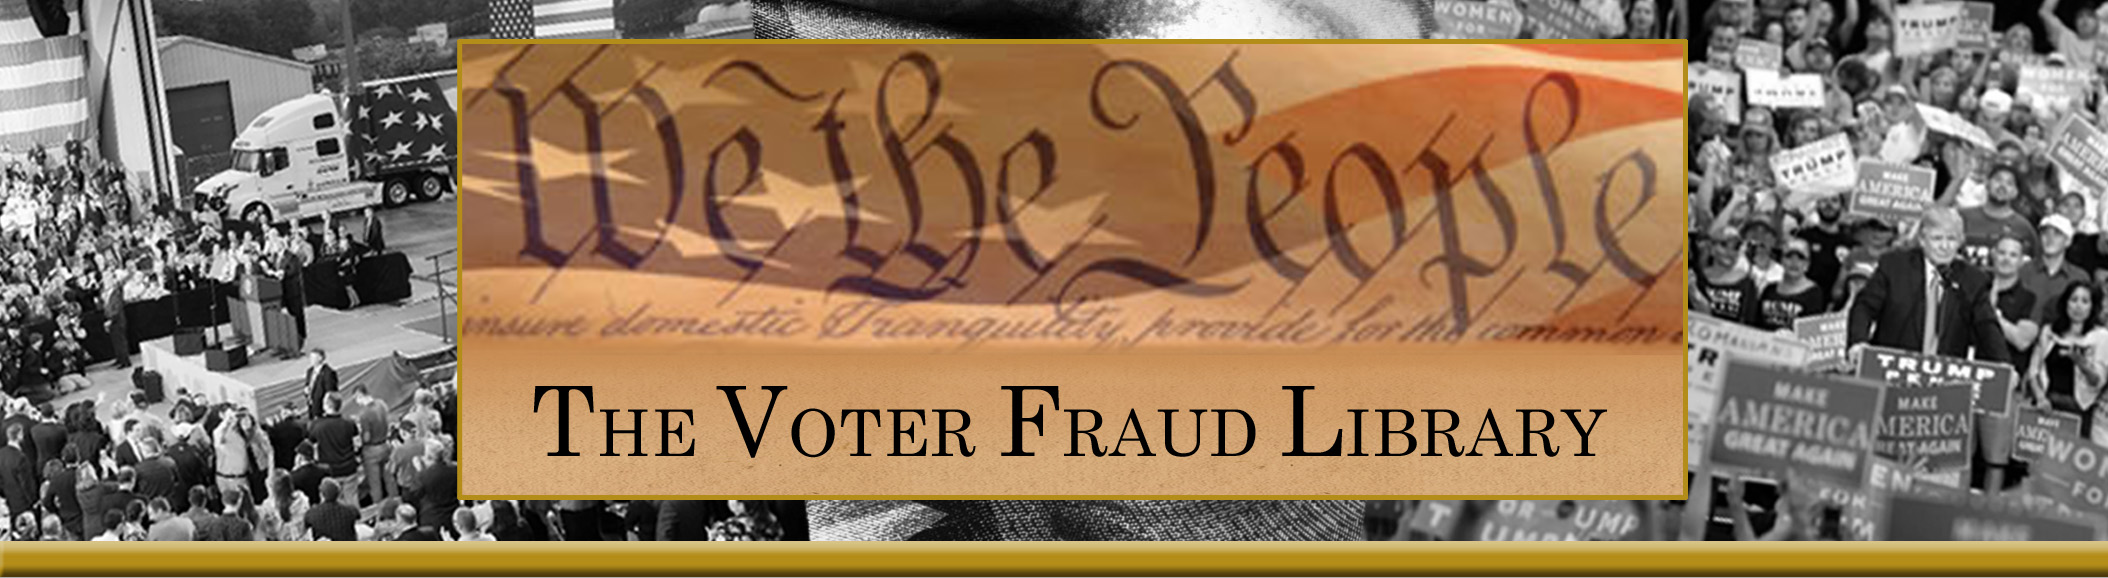 The Voter Fraud Library